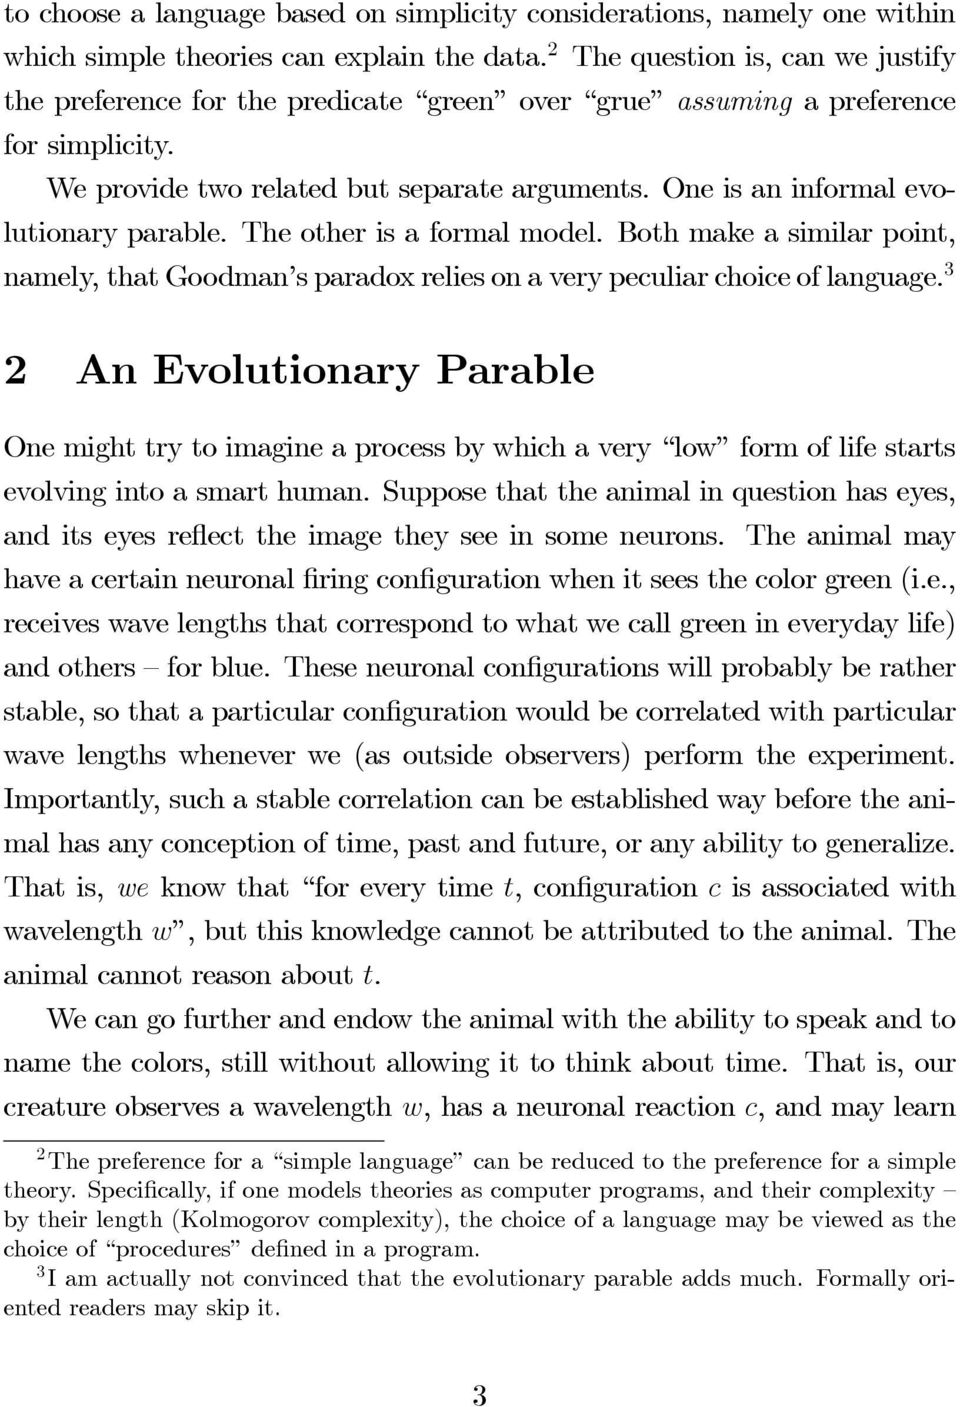 One is an informal evolutionary parable. The other is a formal model. Both make a similar point, namely, that Goodman s paradox relies on a very peculiar choice of language.